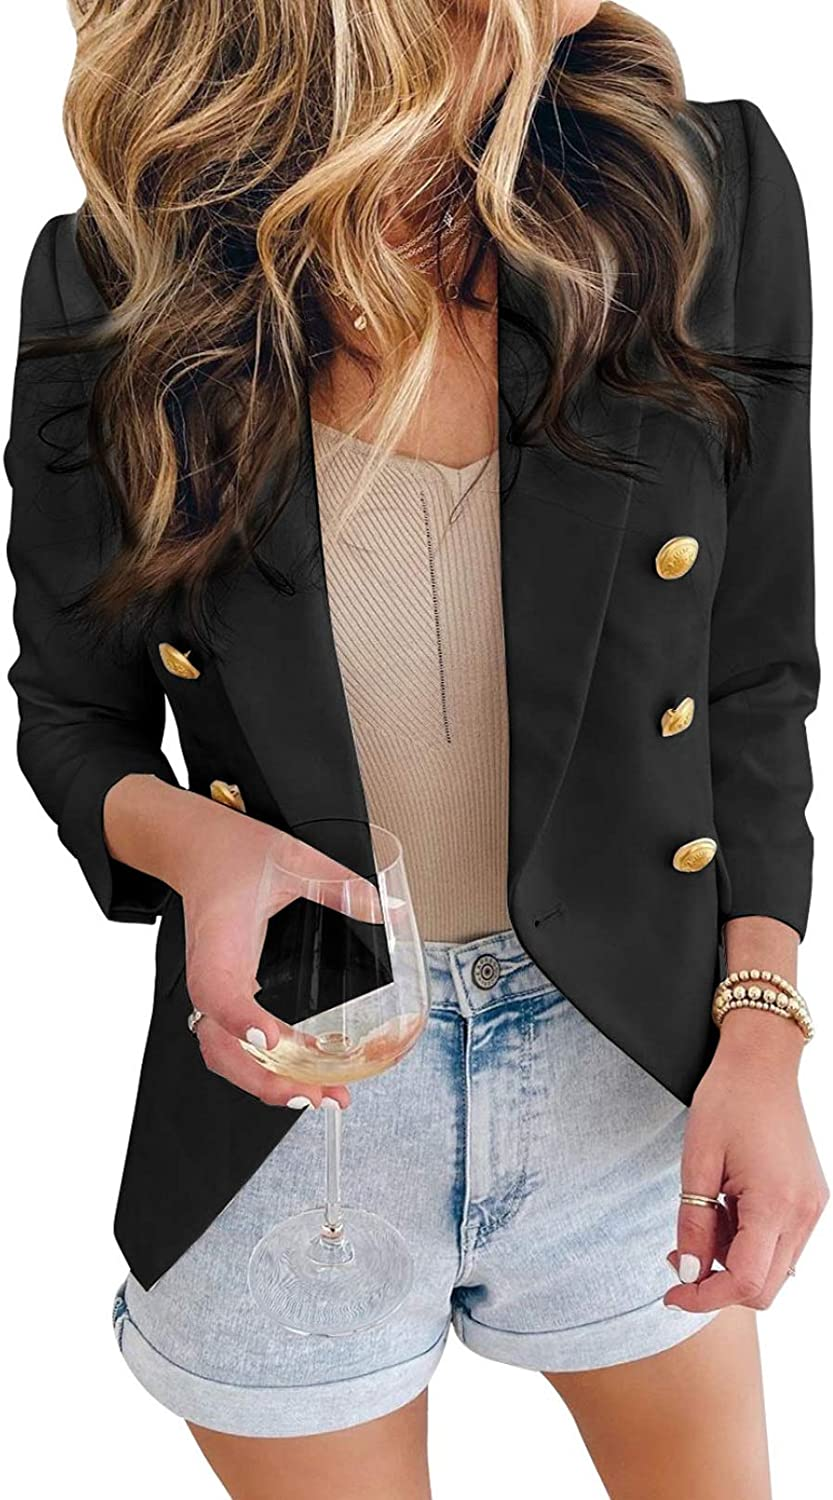 Asvivid Womens low-pricing Casual 2021 Pocketed Office Blazers Front Open Draped